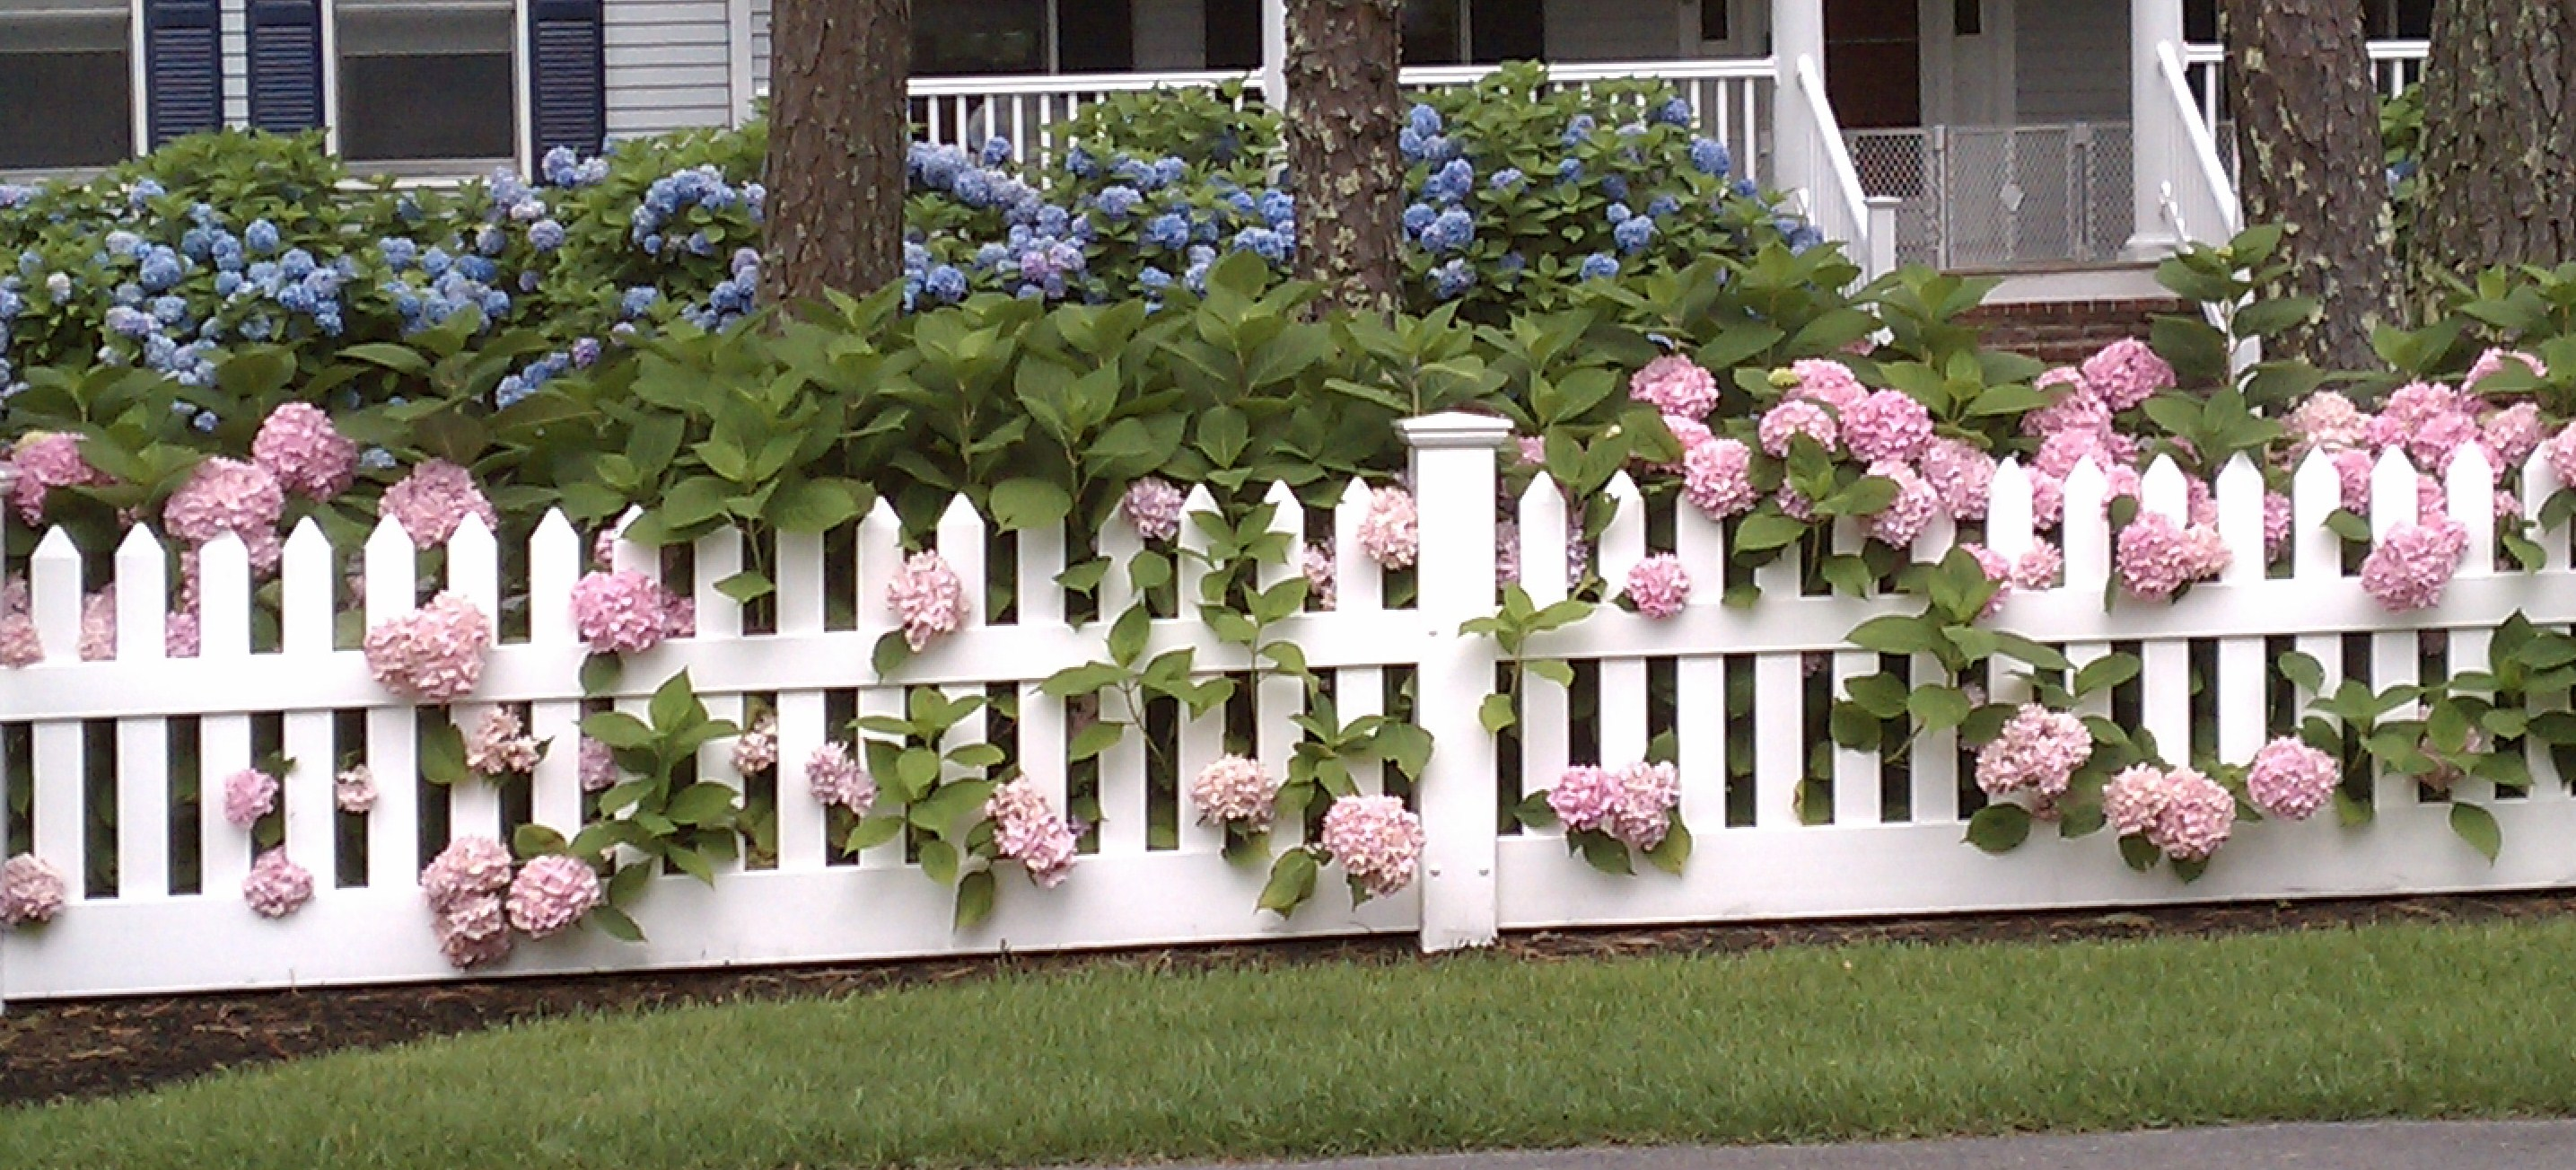 pink and blue hydrangeas along a white picket fence